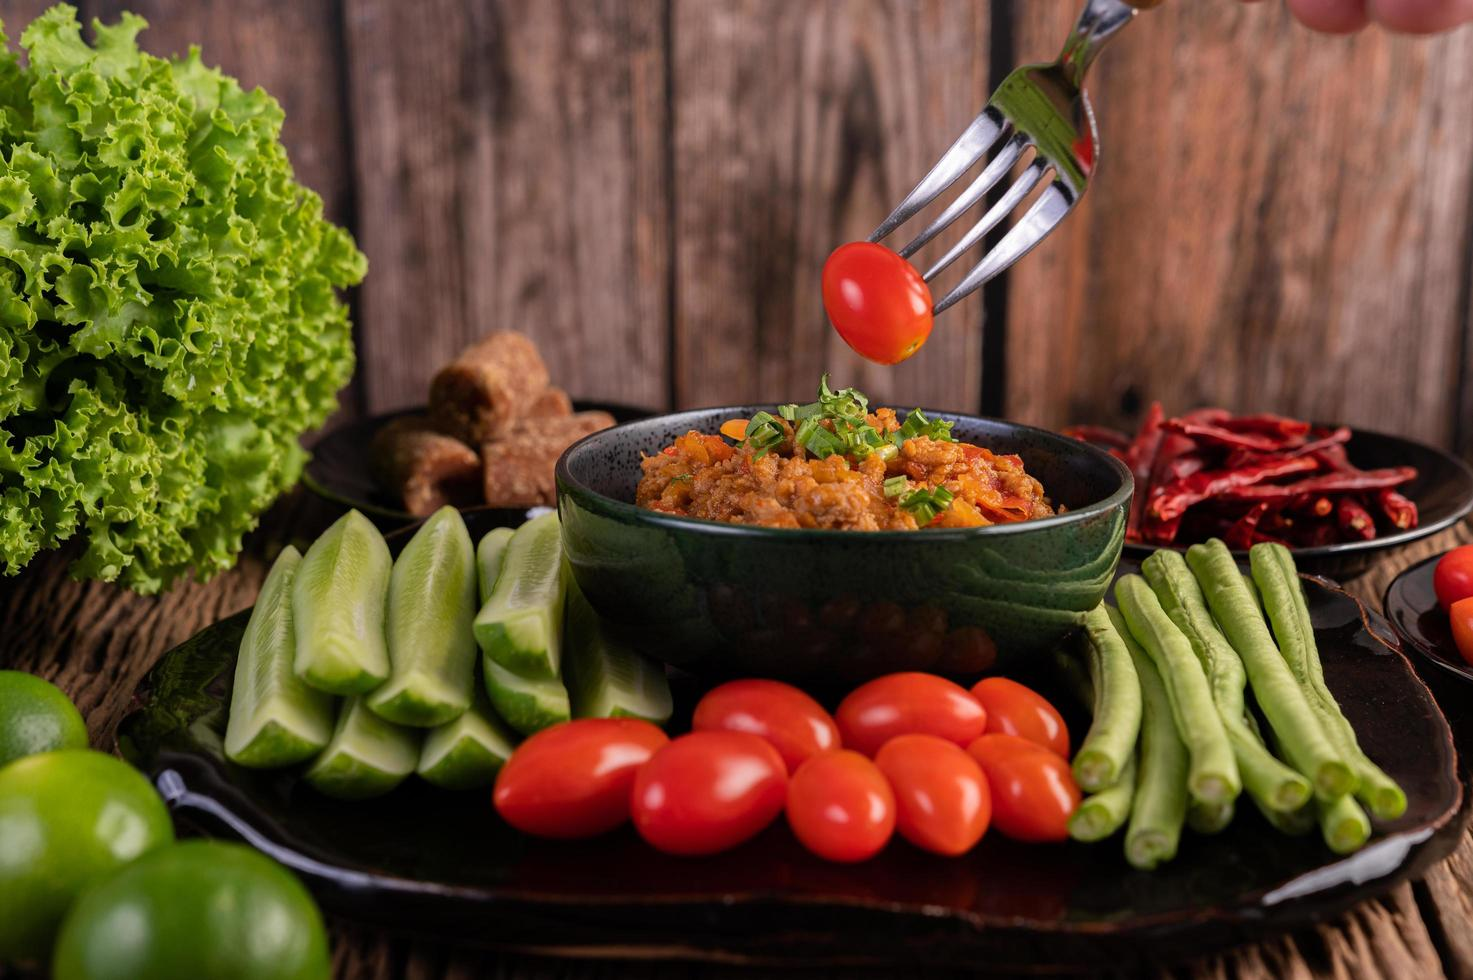 Pork with cucumbers, long beans, tomatoes and side dishes photo